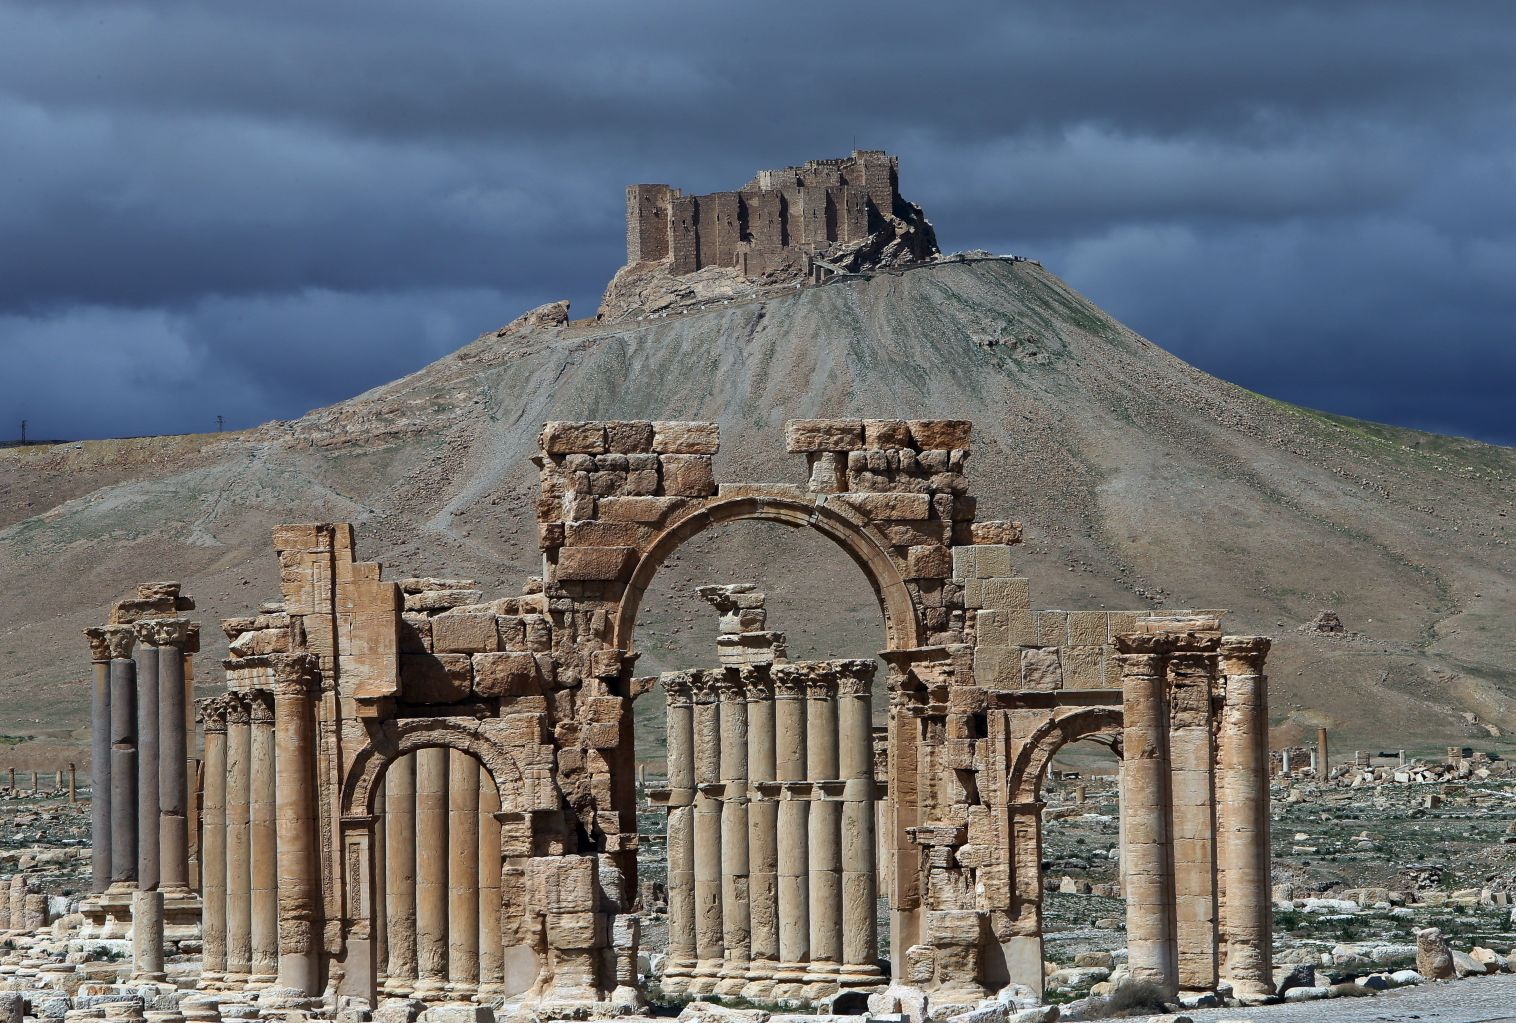 A picture taken on March 14, 2014 shows a partial view of the ancient oasis city of Palmyra, 215 kilometres northeast of Damascus. From the 1st to the 2nd century, the art and architecture of Palmyra, standing at the crossroads of several civilizations, married Graeco-Roman techniques with local traditions and Persian influences. AFP PHOTO/JOSEPH EID        (Photo credit should read JOSEPH EID/AFP/Getty Images)